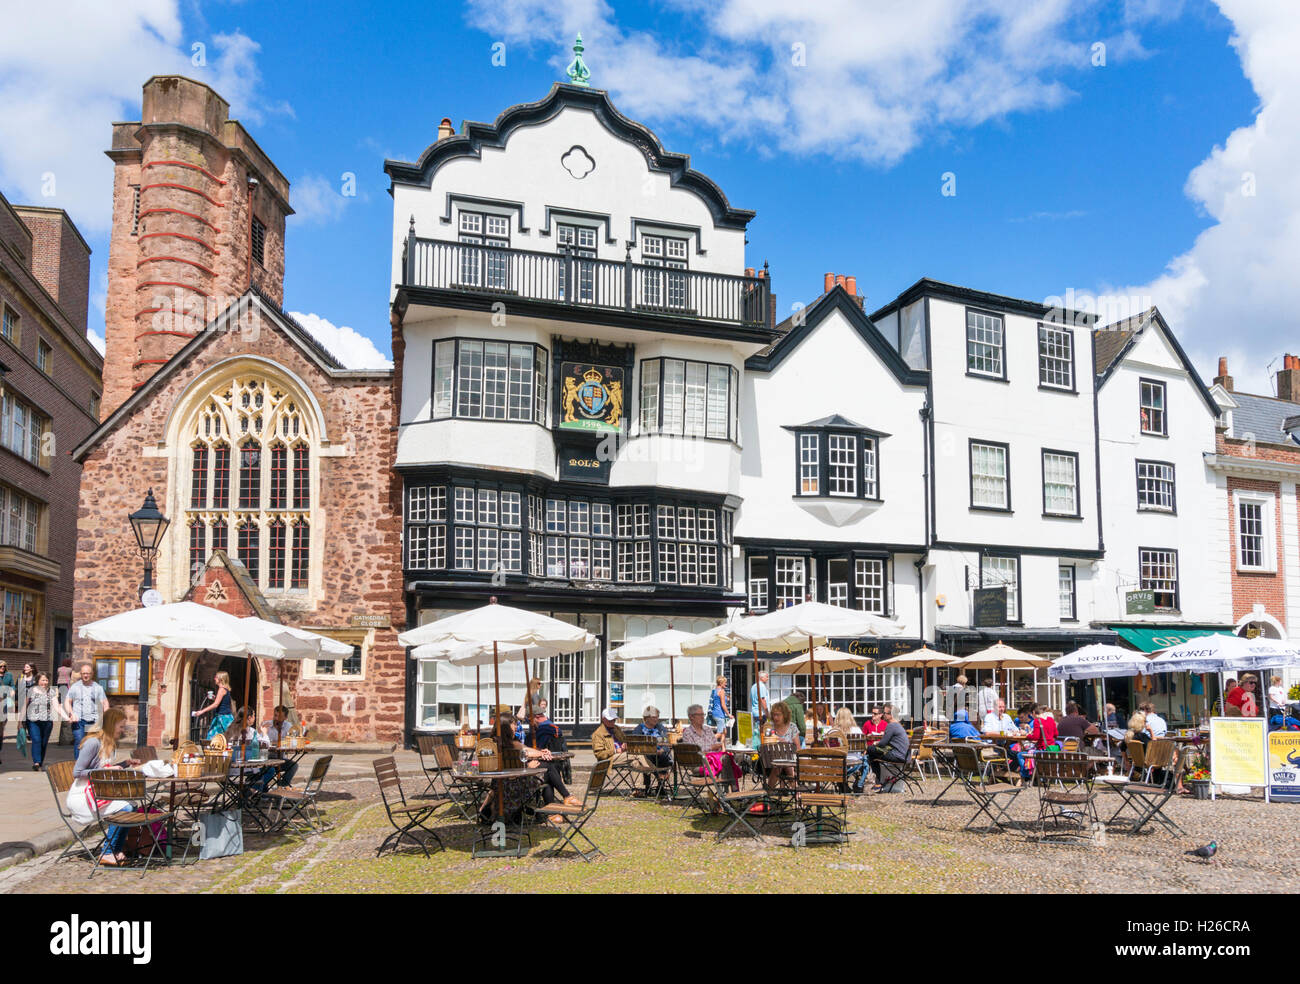 St Martins church and Mols Coffee house Cathedral Close Exeter Devon England UK GB EU Europe - Stock Image